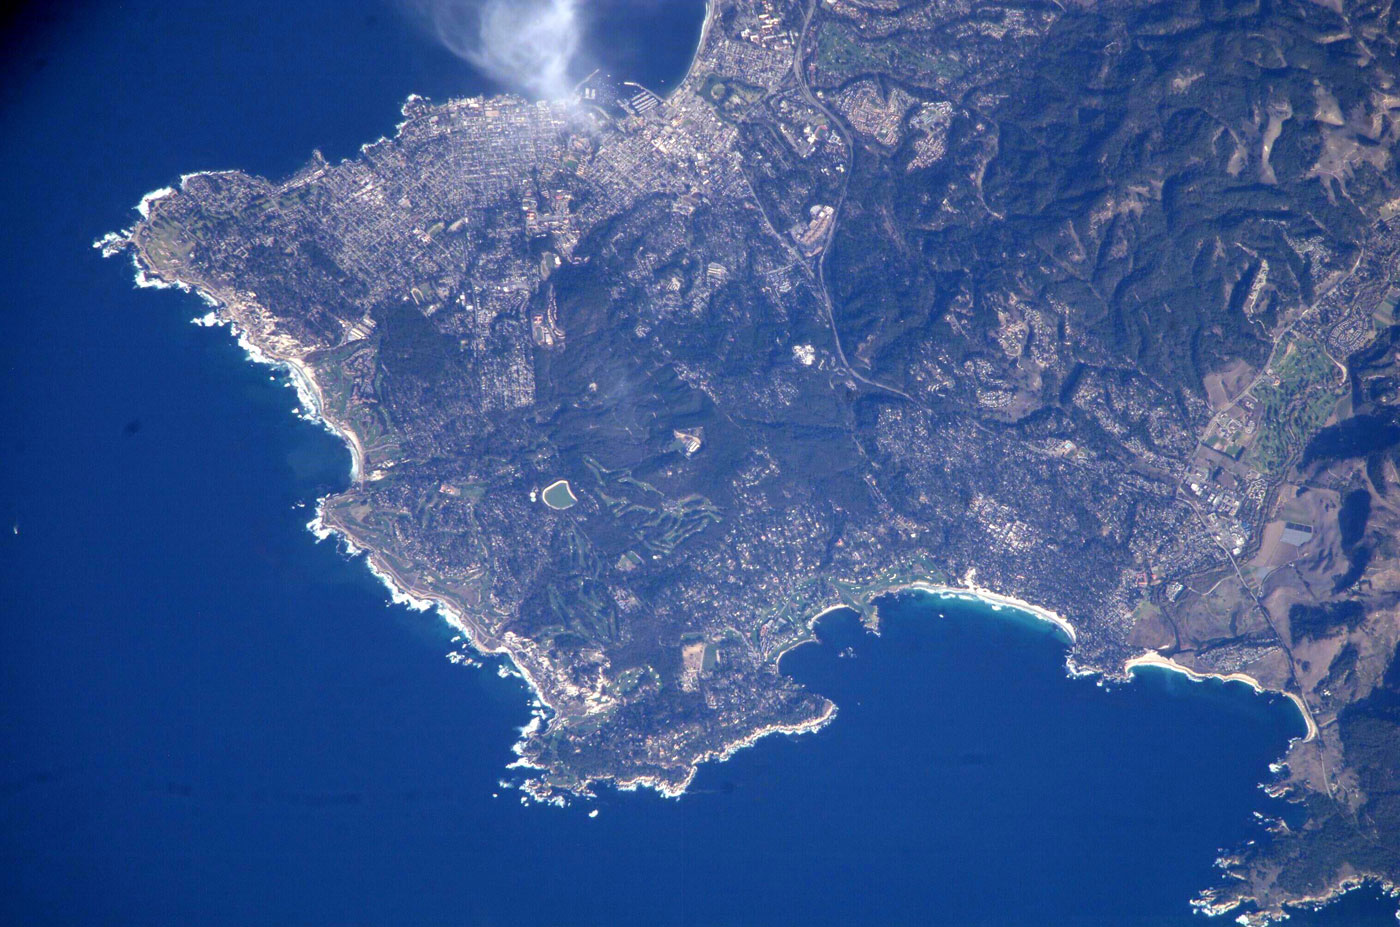 The Monterey Peninsula, as seen from the International Space Station.